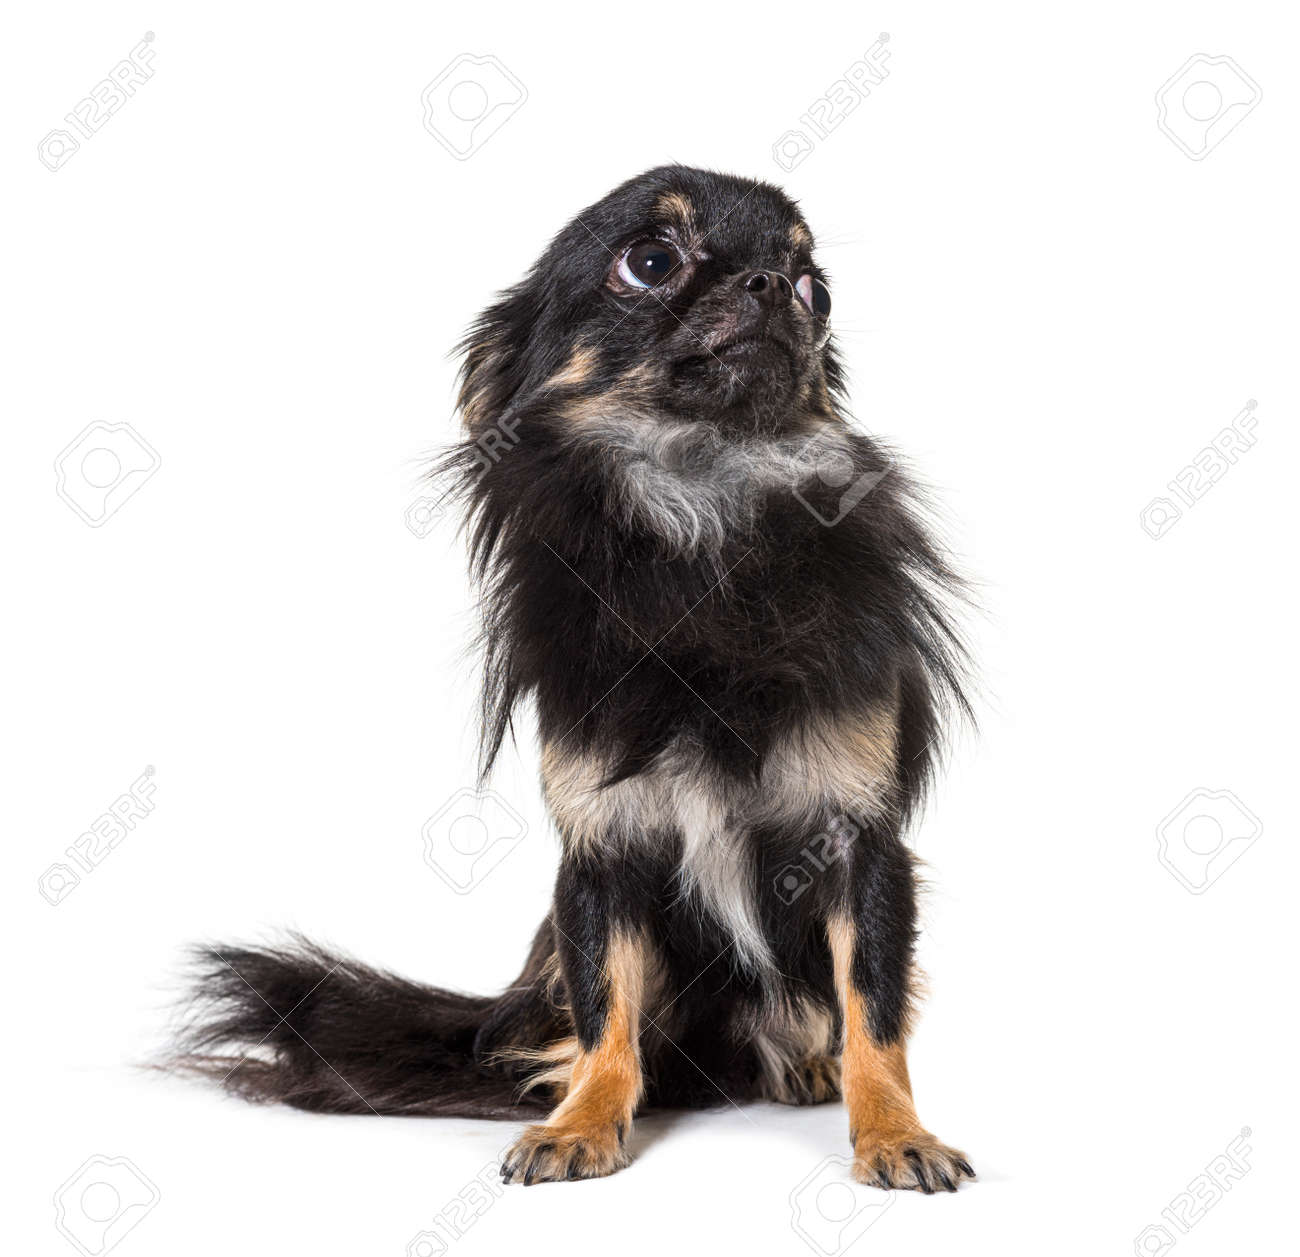 Black Worried sitting Chihuahua looking up, isolated - 171049280